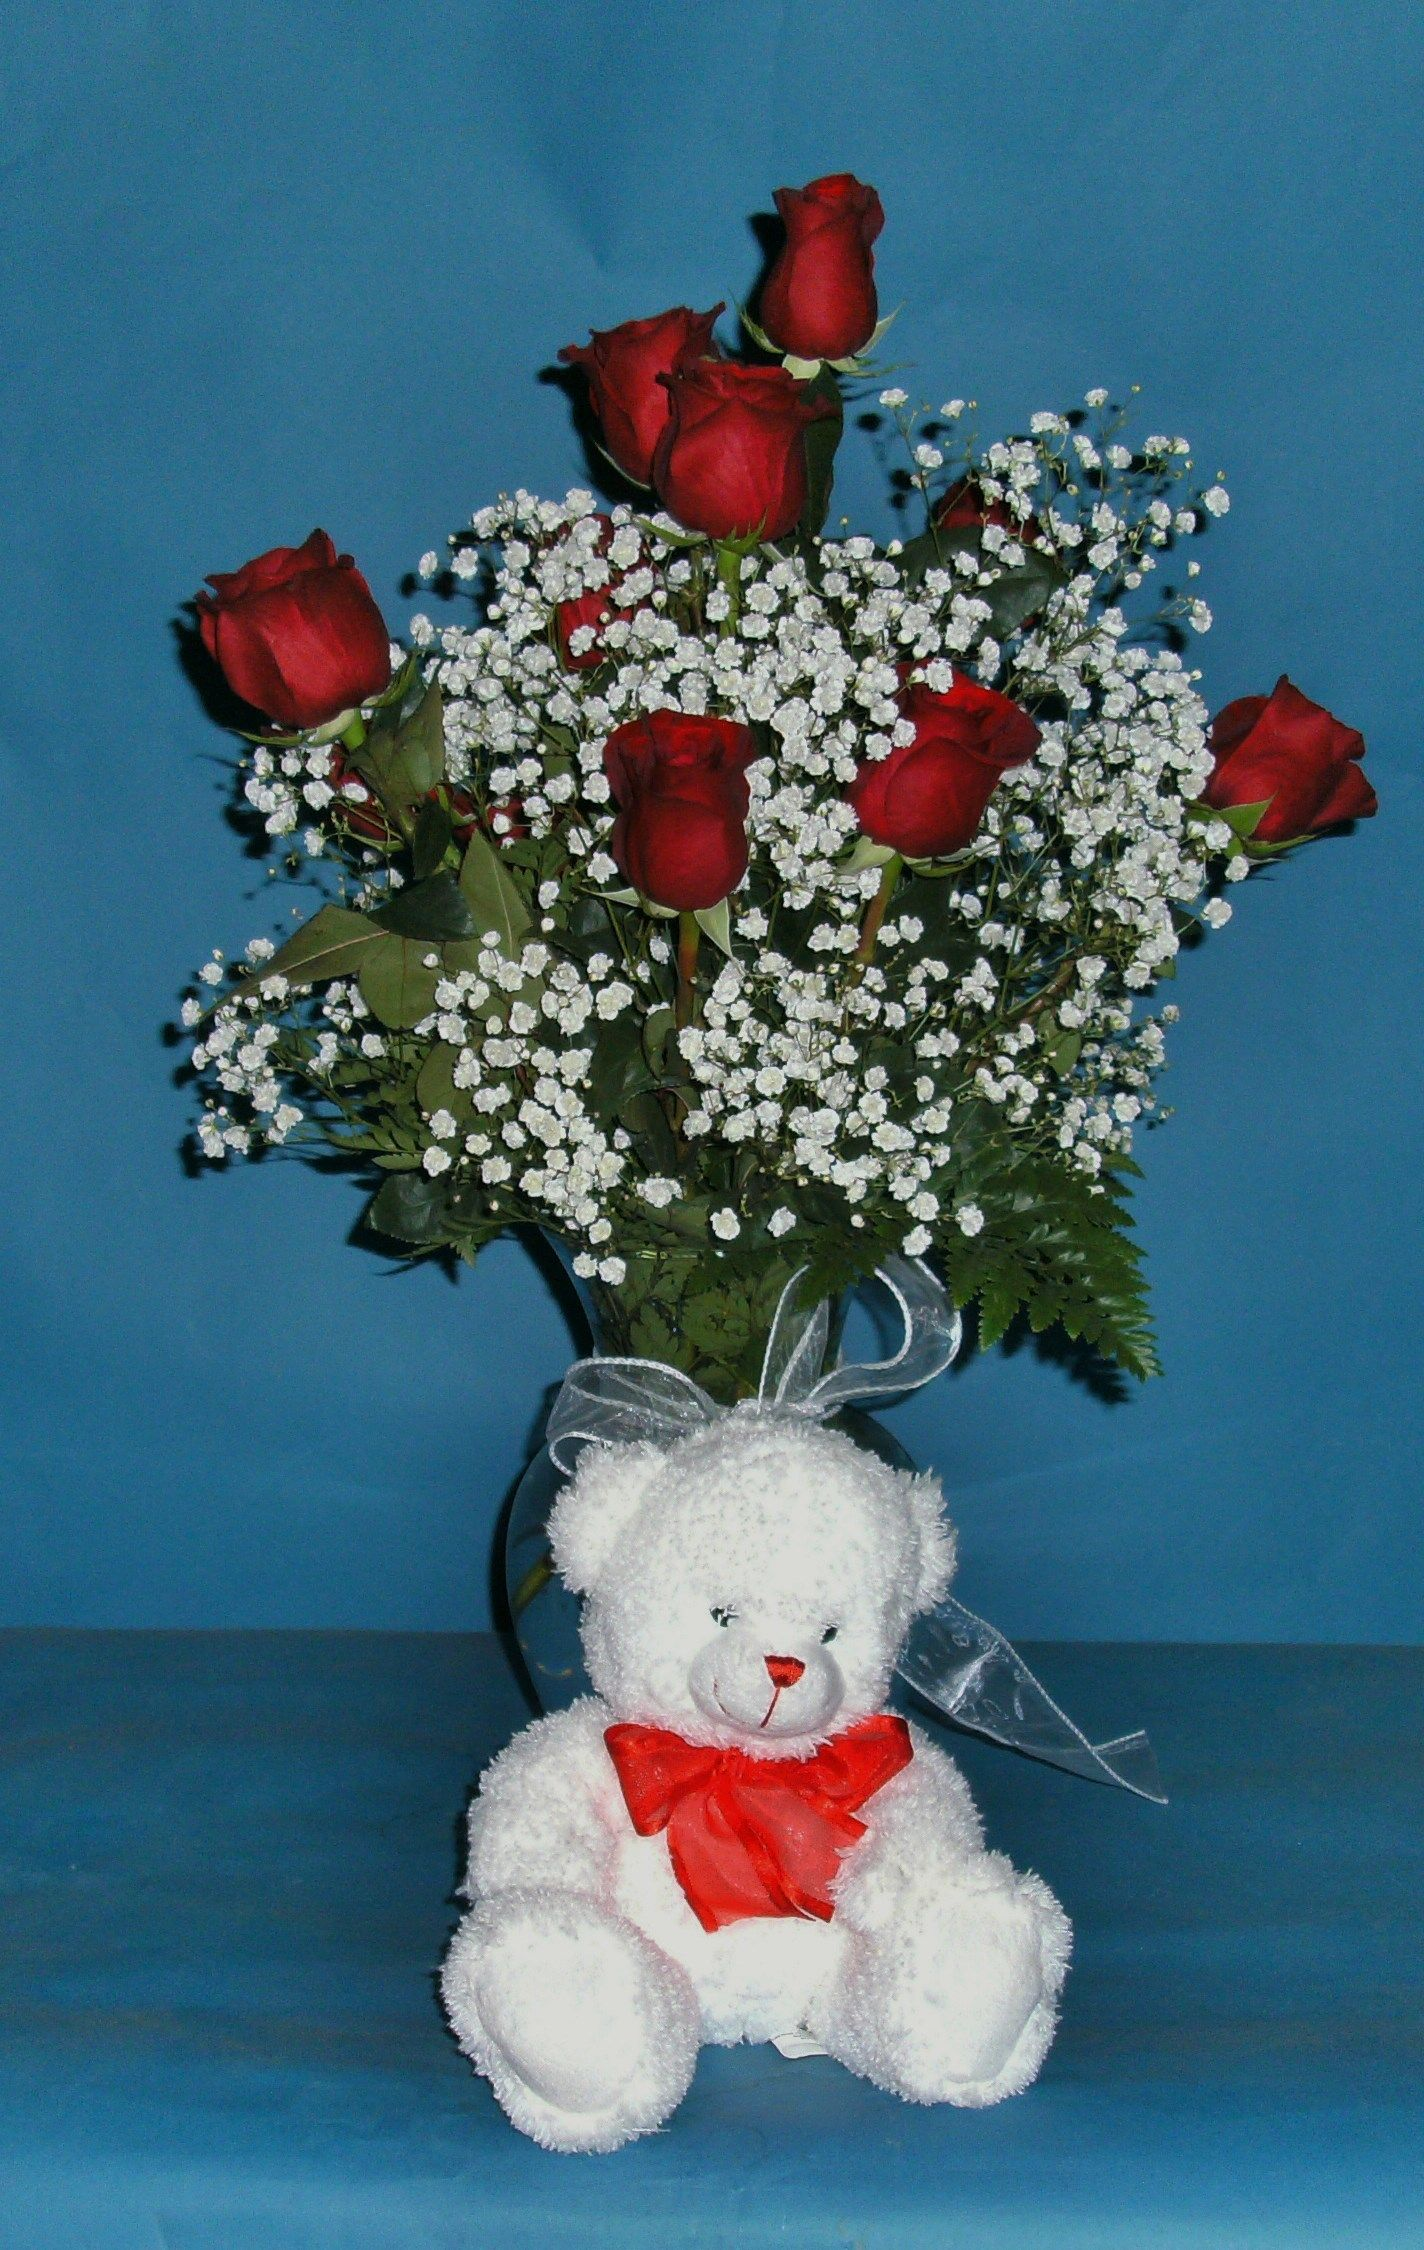 ROSES WITH A CUDDLY TEDDY BEAR FOR YOUR SWEETHEART ON VALENTINE'S DAY!!!